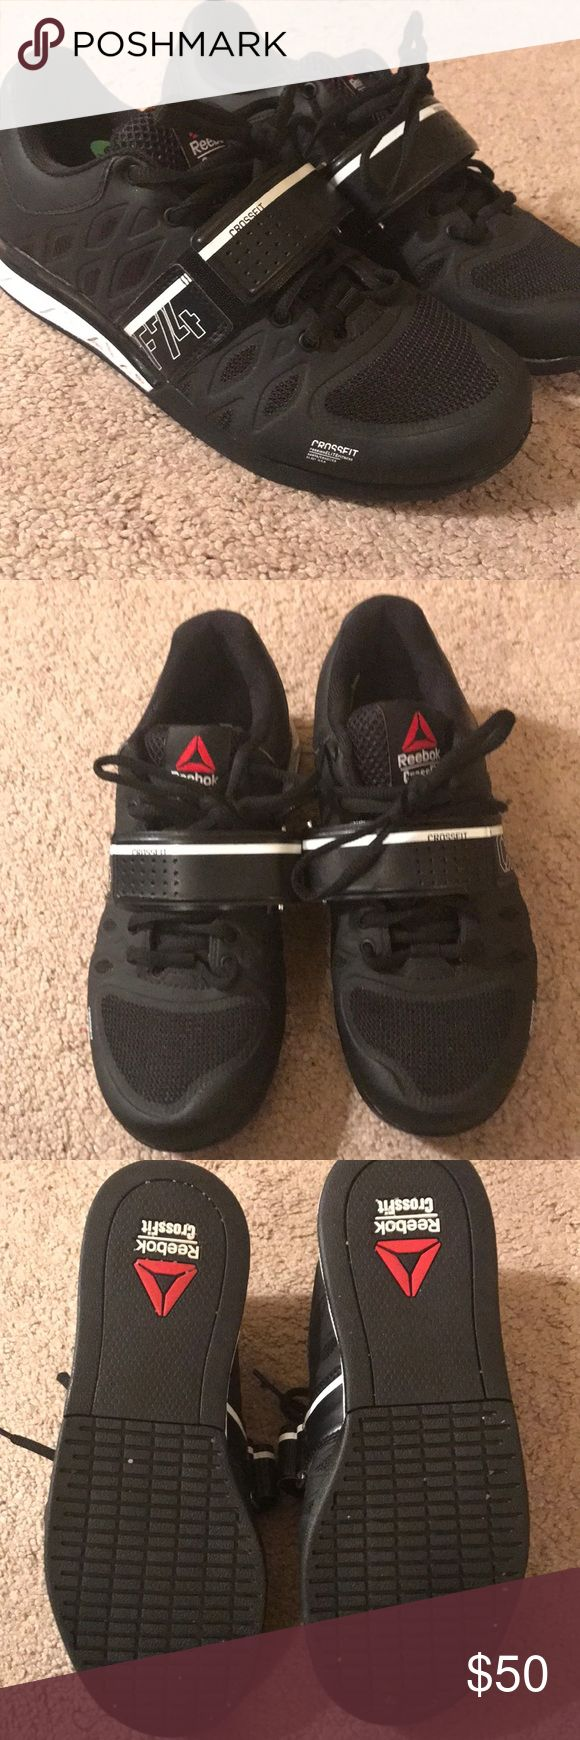 Reebok Crossfit Lifting Shoe - Black Reebok Crossfit Lifting Shoe - Black. Size 7. Gently Worn (2-3 times). No Scuffs. Reebok Shoes Sneakers